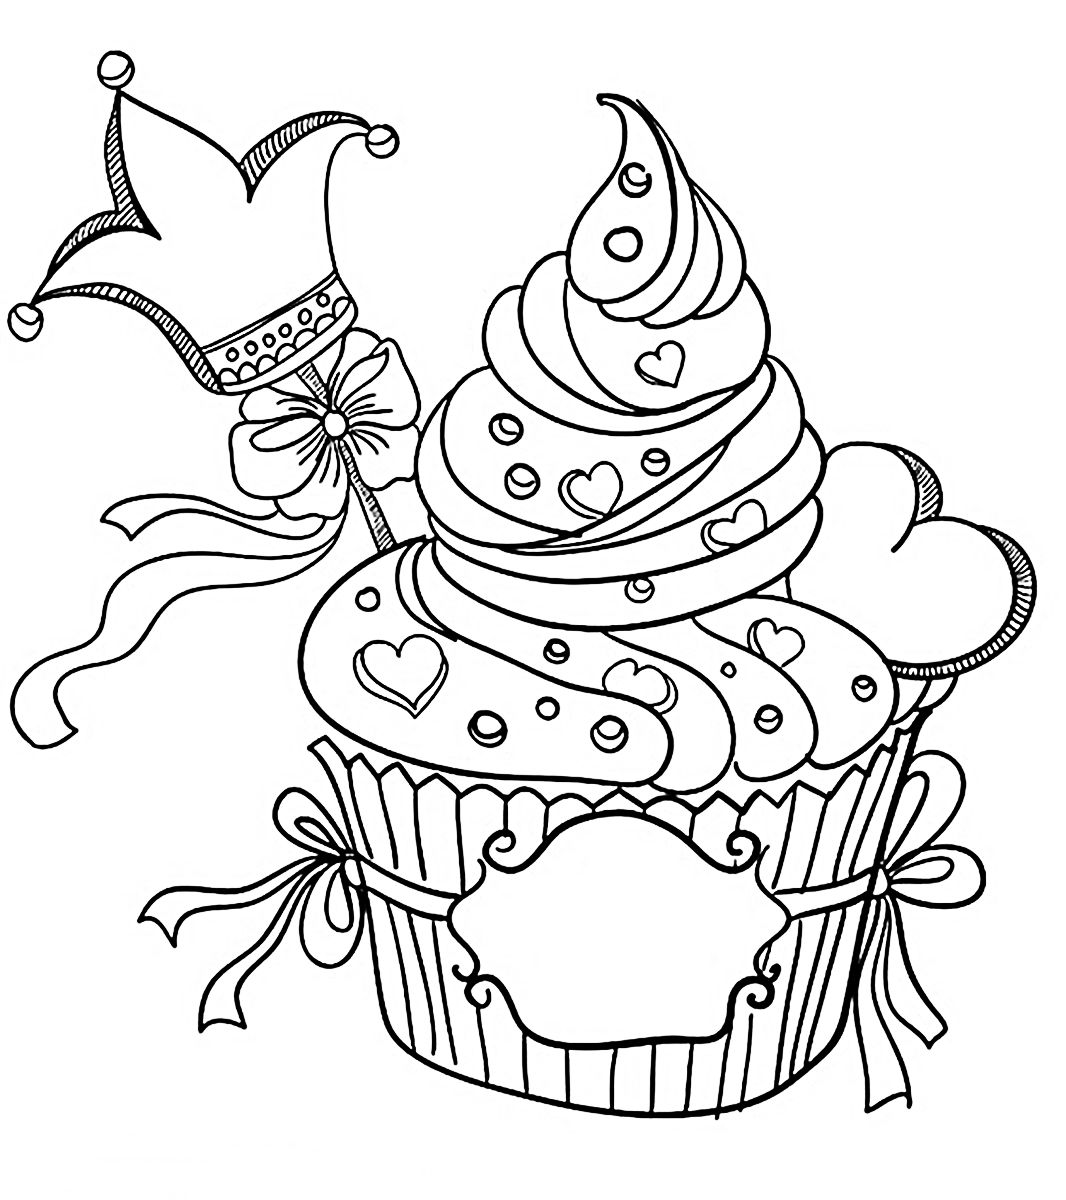 cup21.jpg (1066×1200)   Coloring Pages   Pinterest   Adult coloring ...